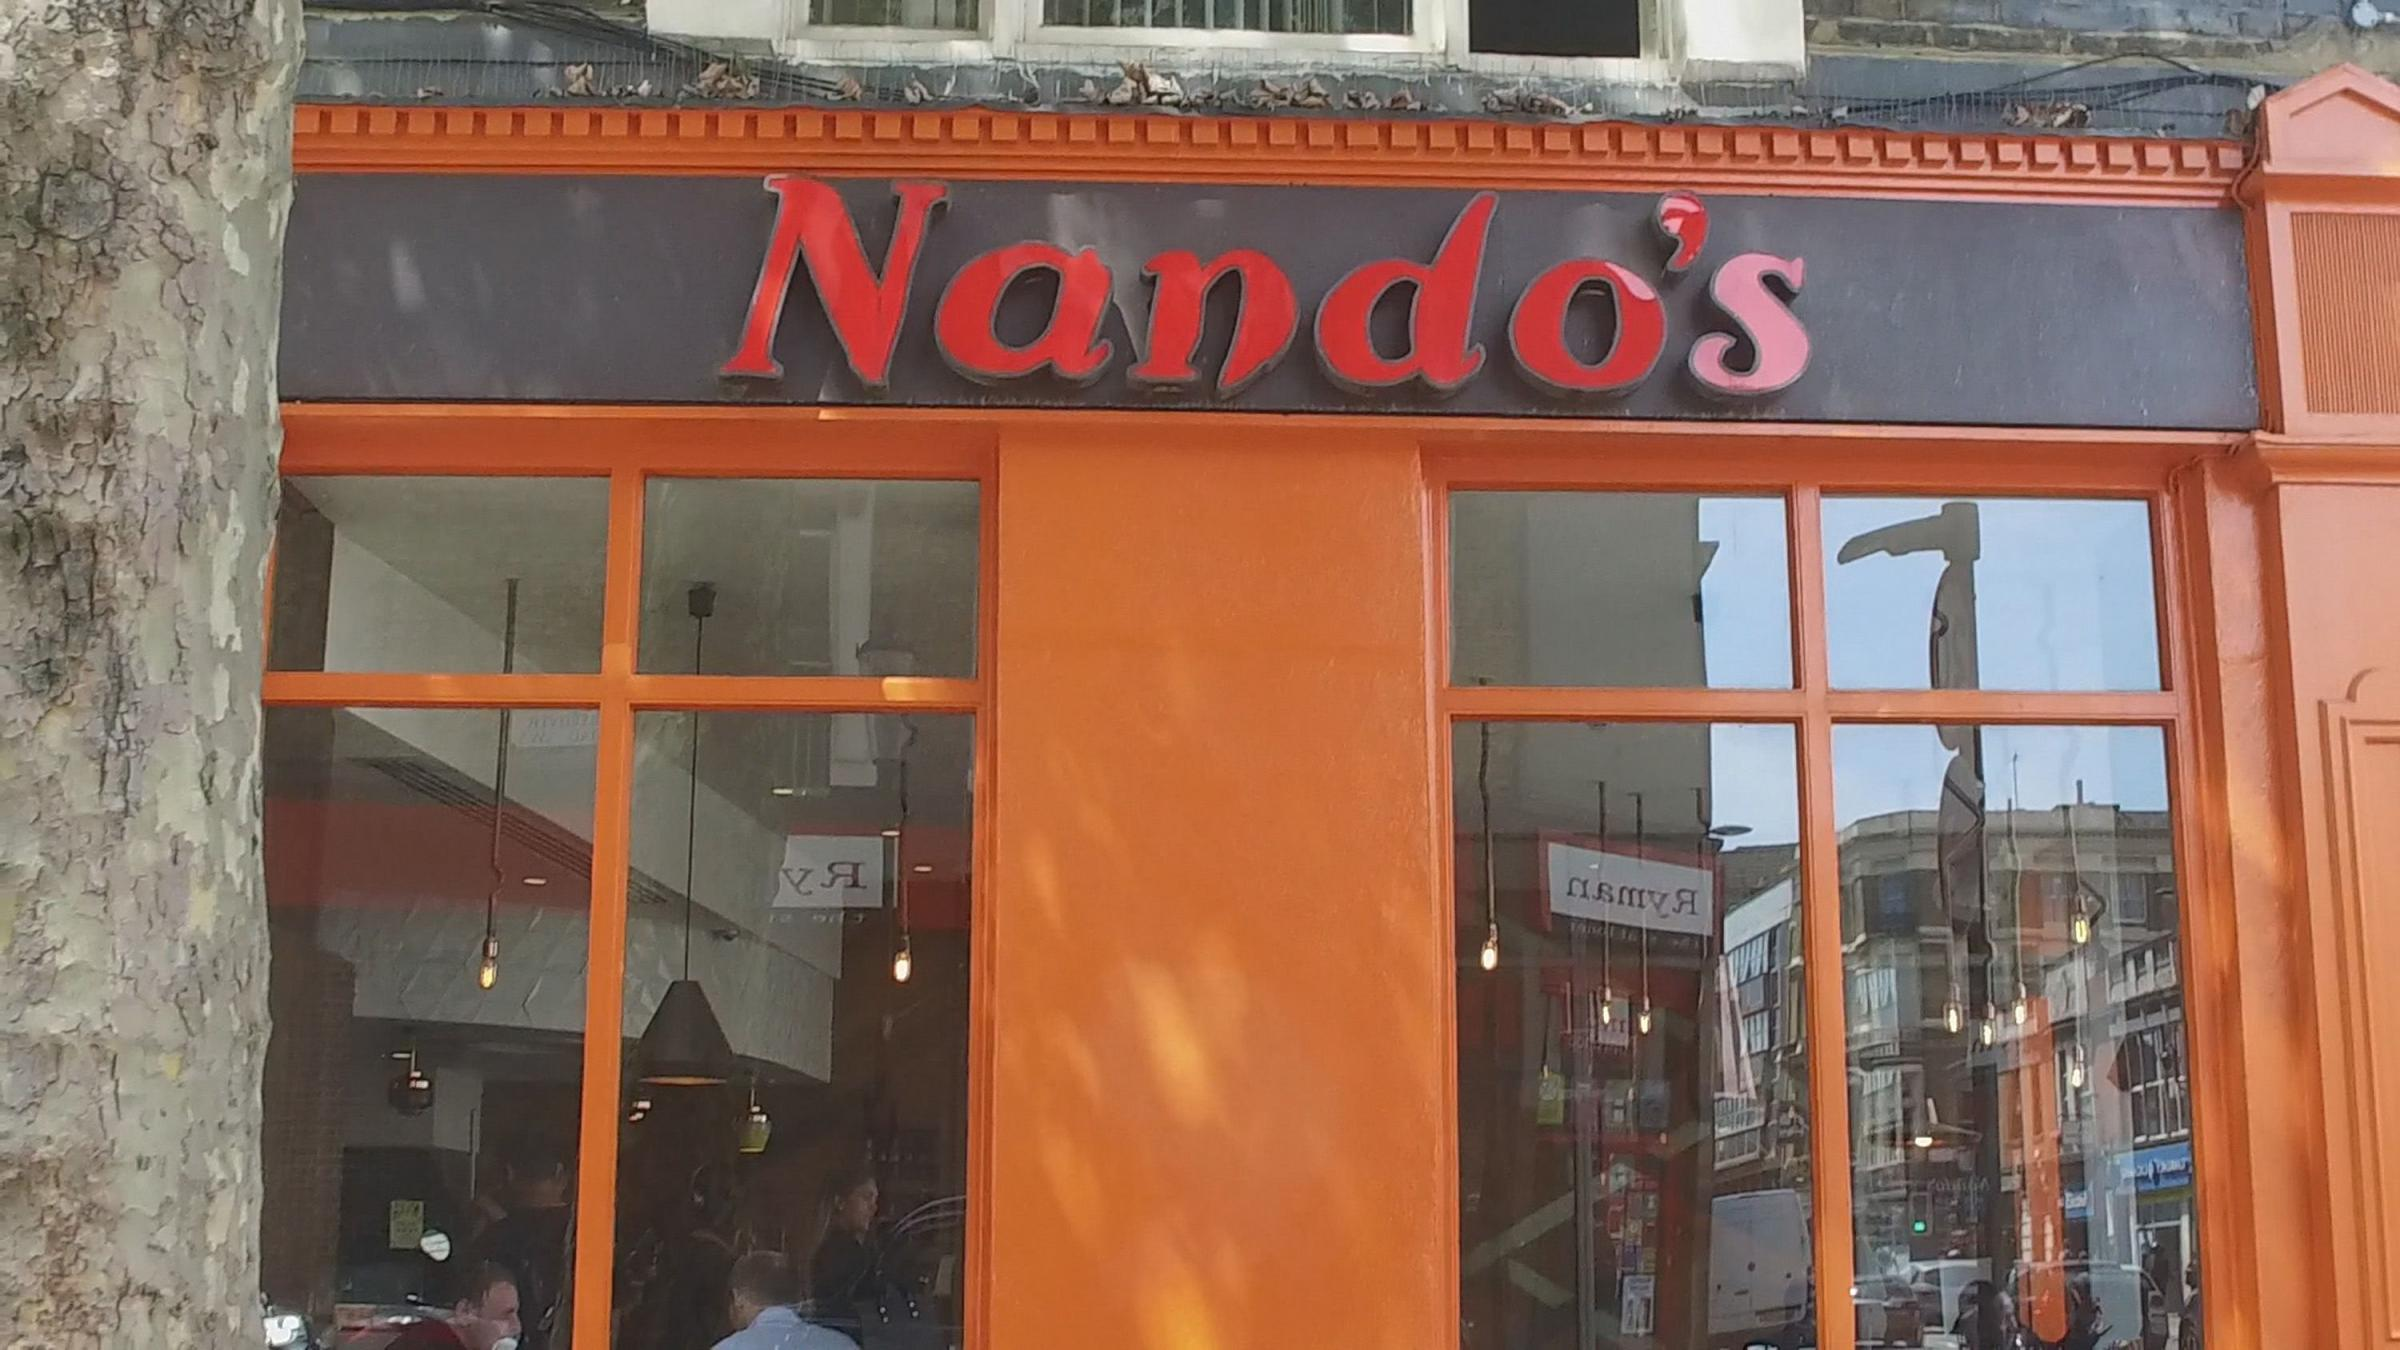 Learn the secrets of Nando's success